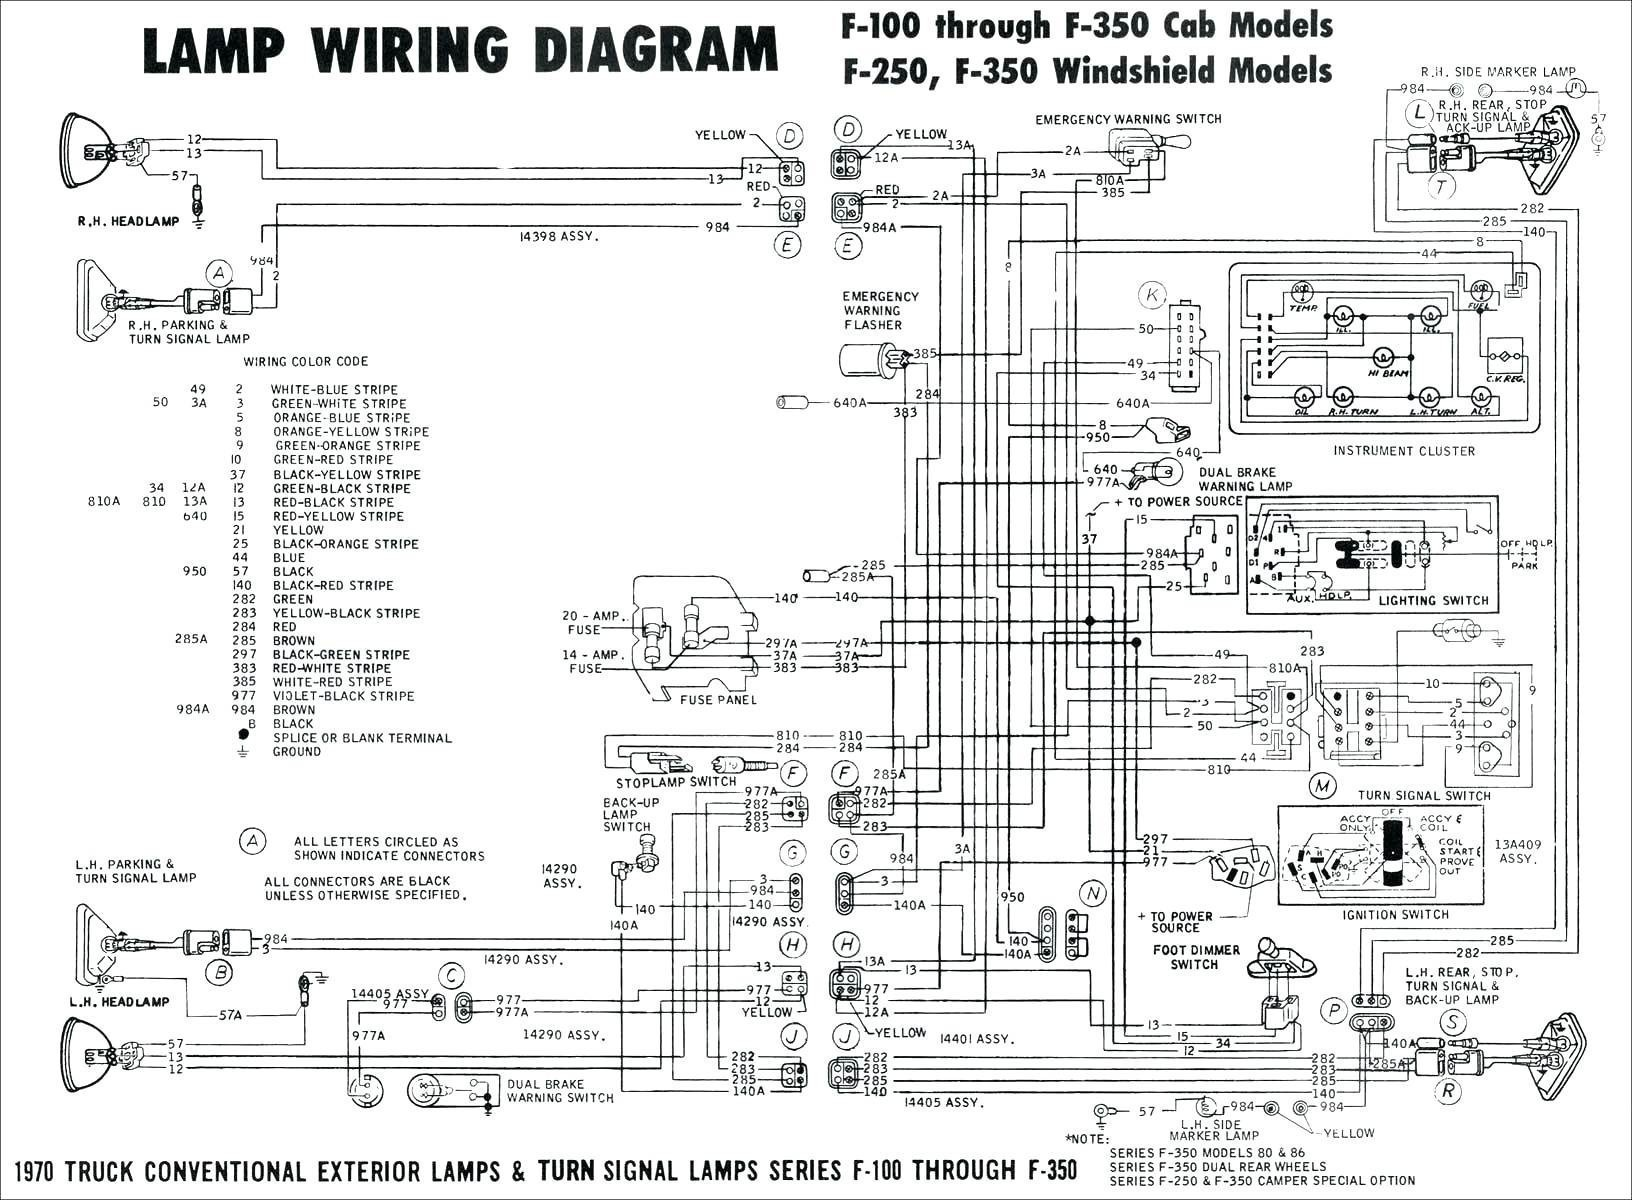 1997 Accord Fuse Diagram Layout Wiring Diagrams •